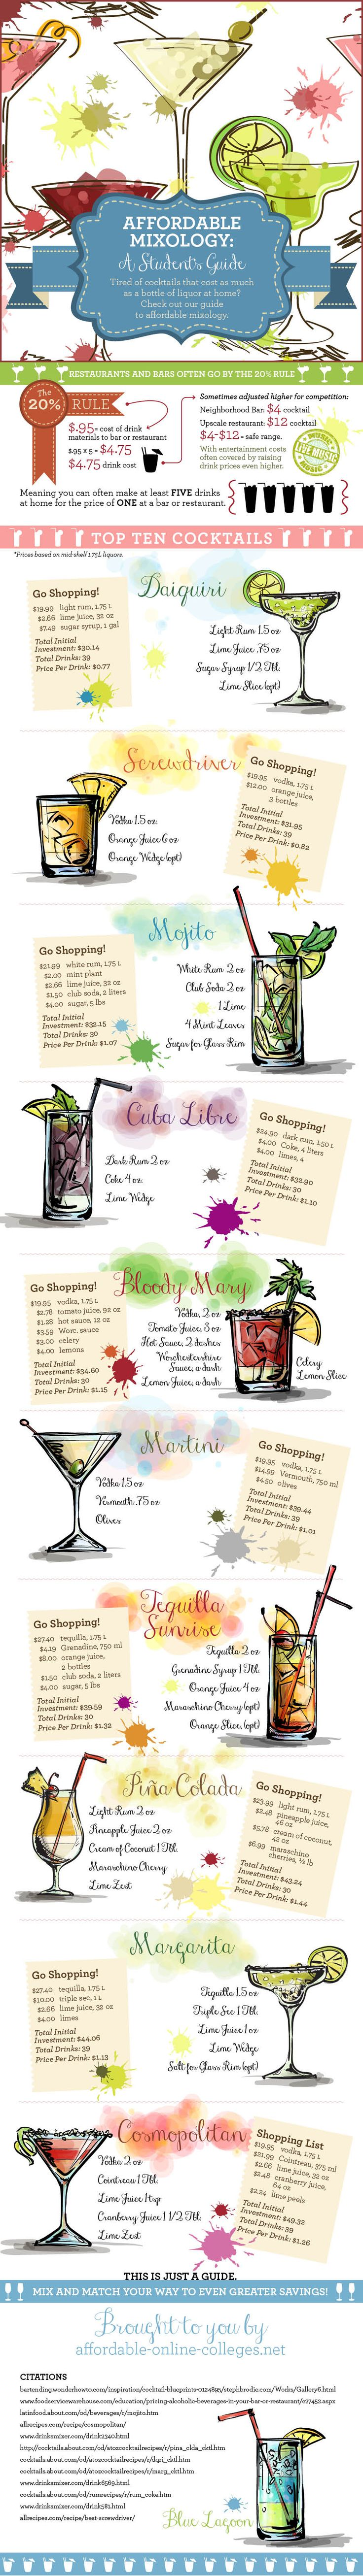 Best 25+ Cheap mixed drinks ideas on Pinterest